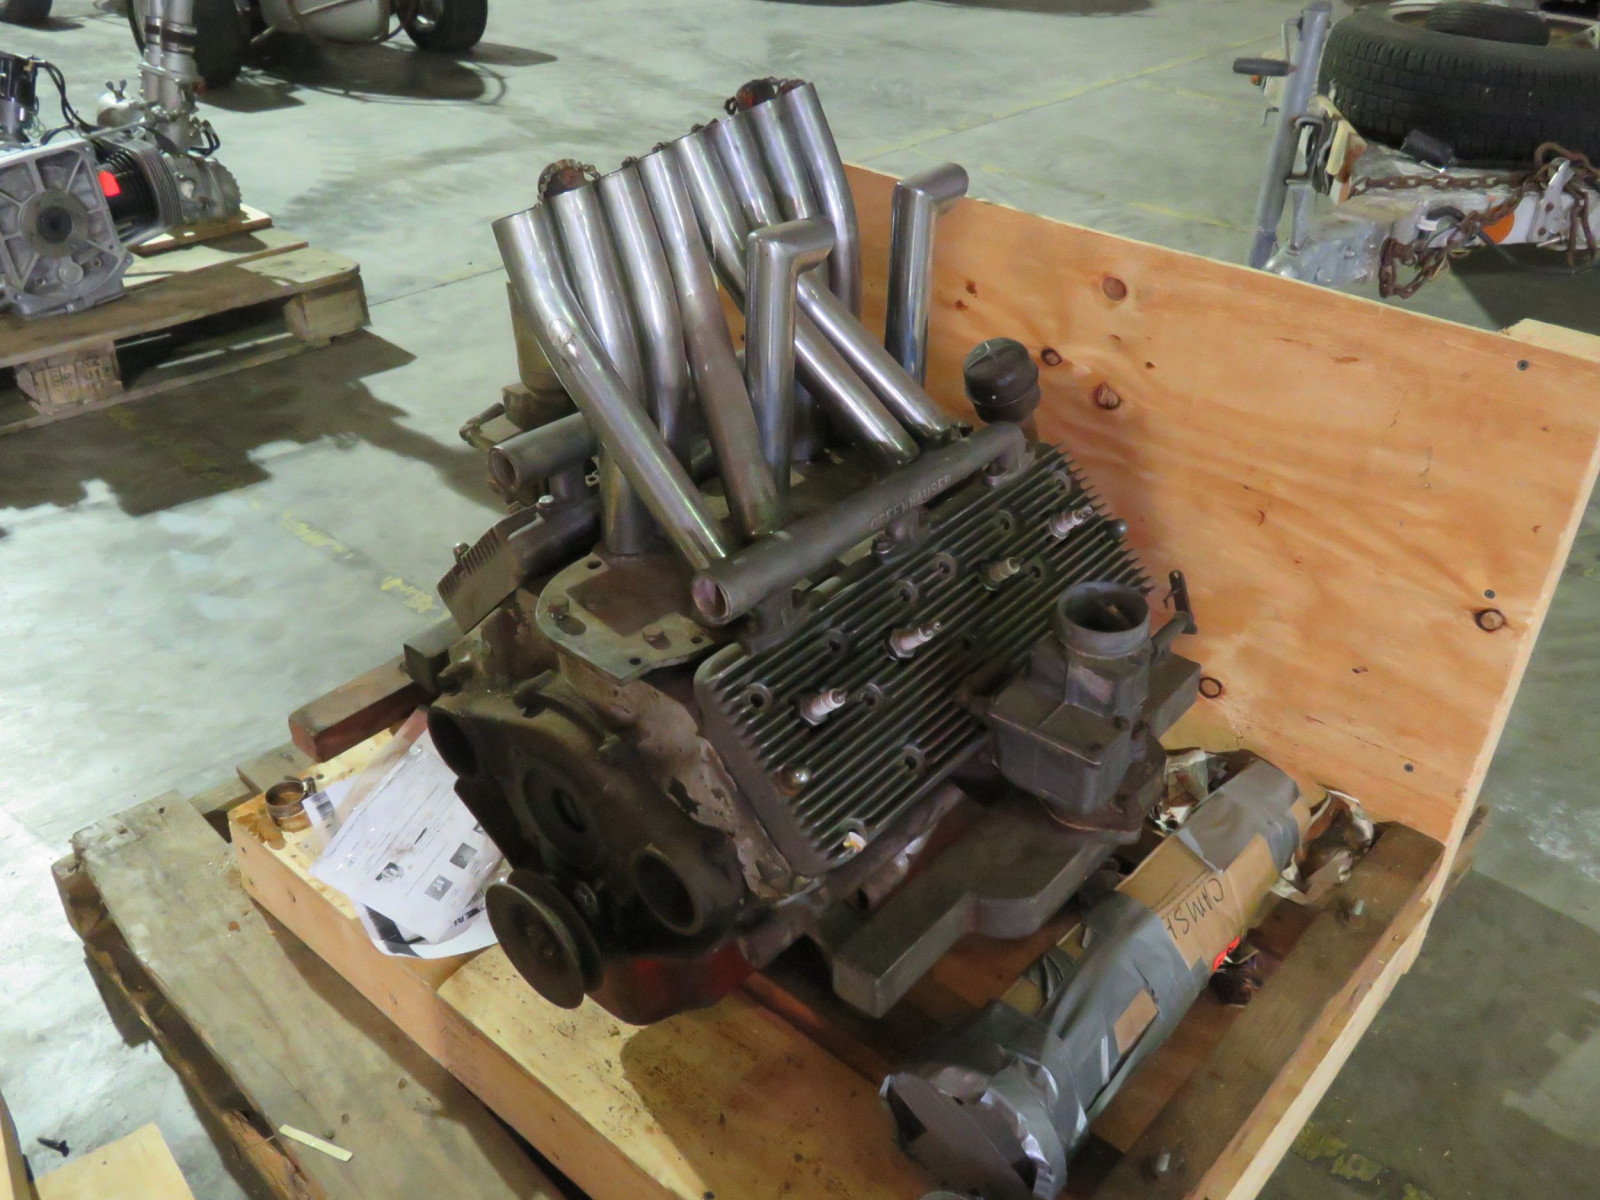 FH V8 60hp with Offenhauser Heads for Midget Race Car - Image 3